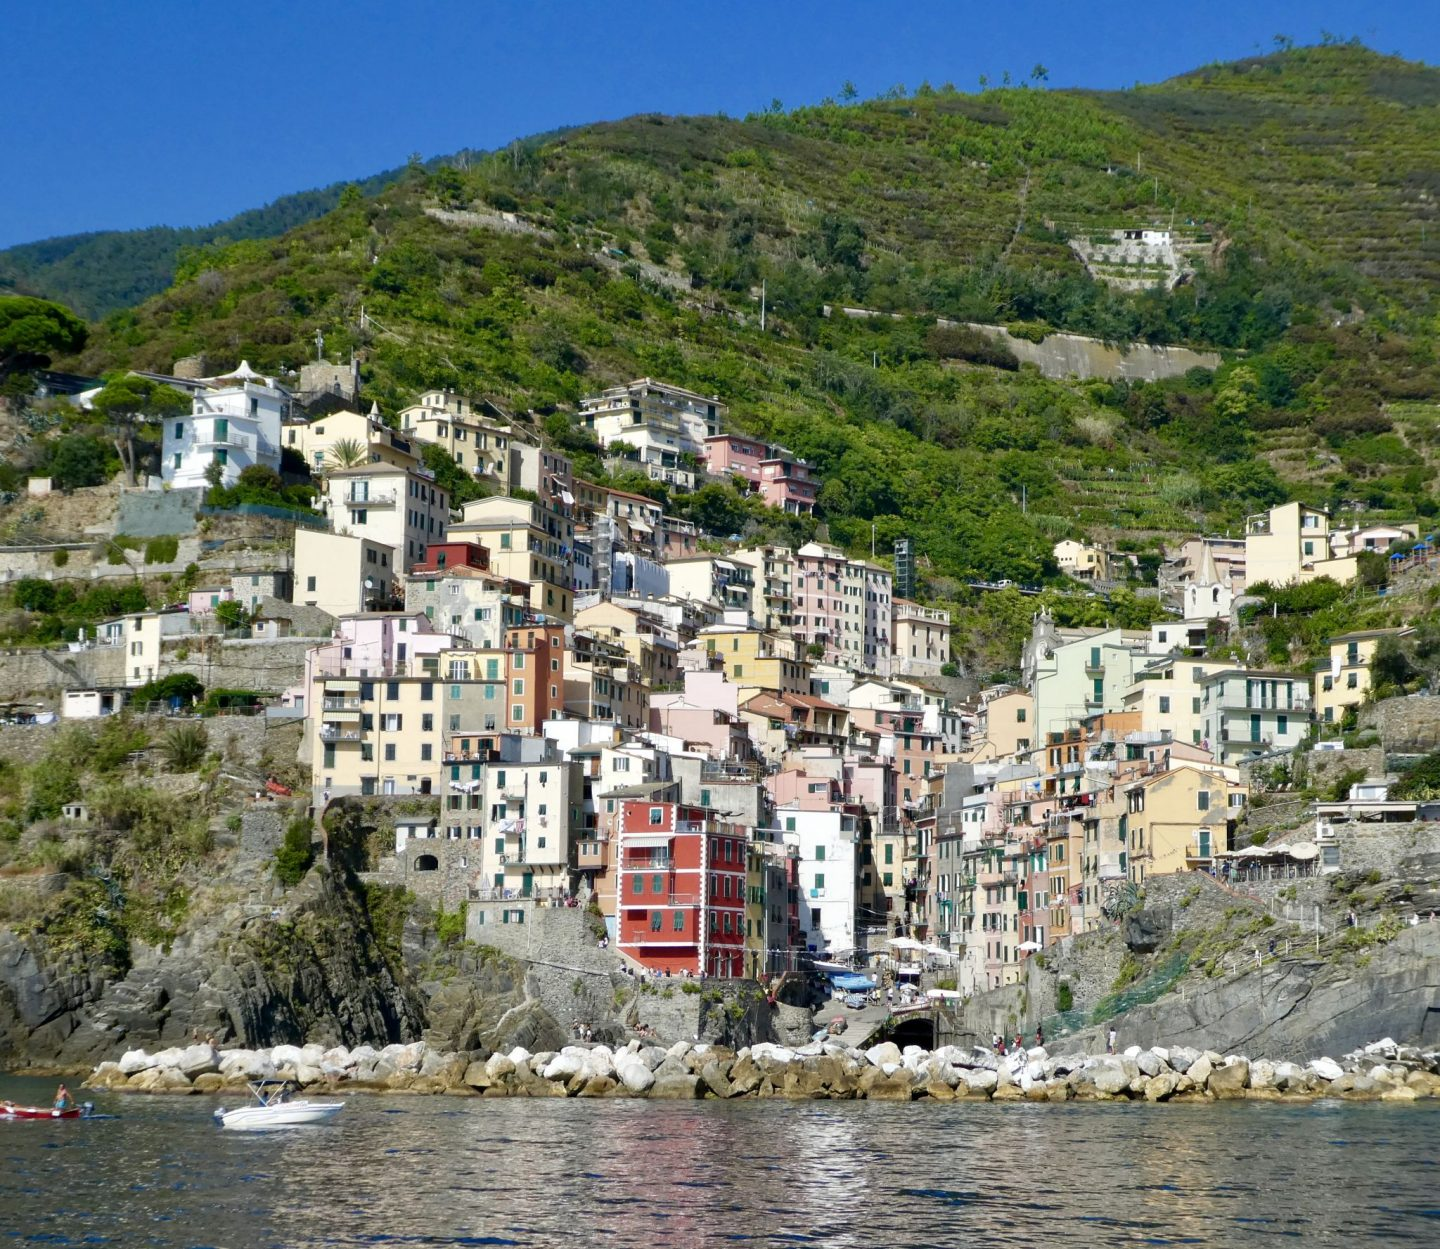 Cinque Terre (14 to 18 September 2019)